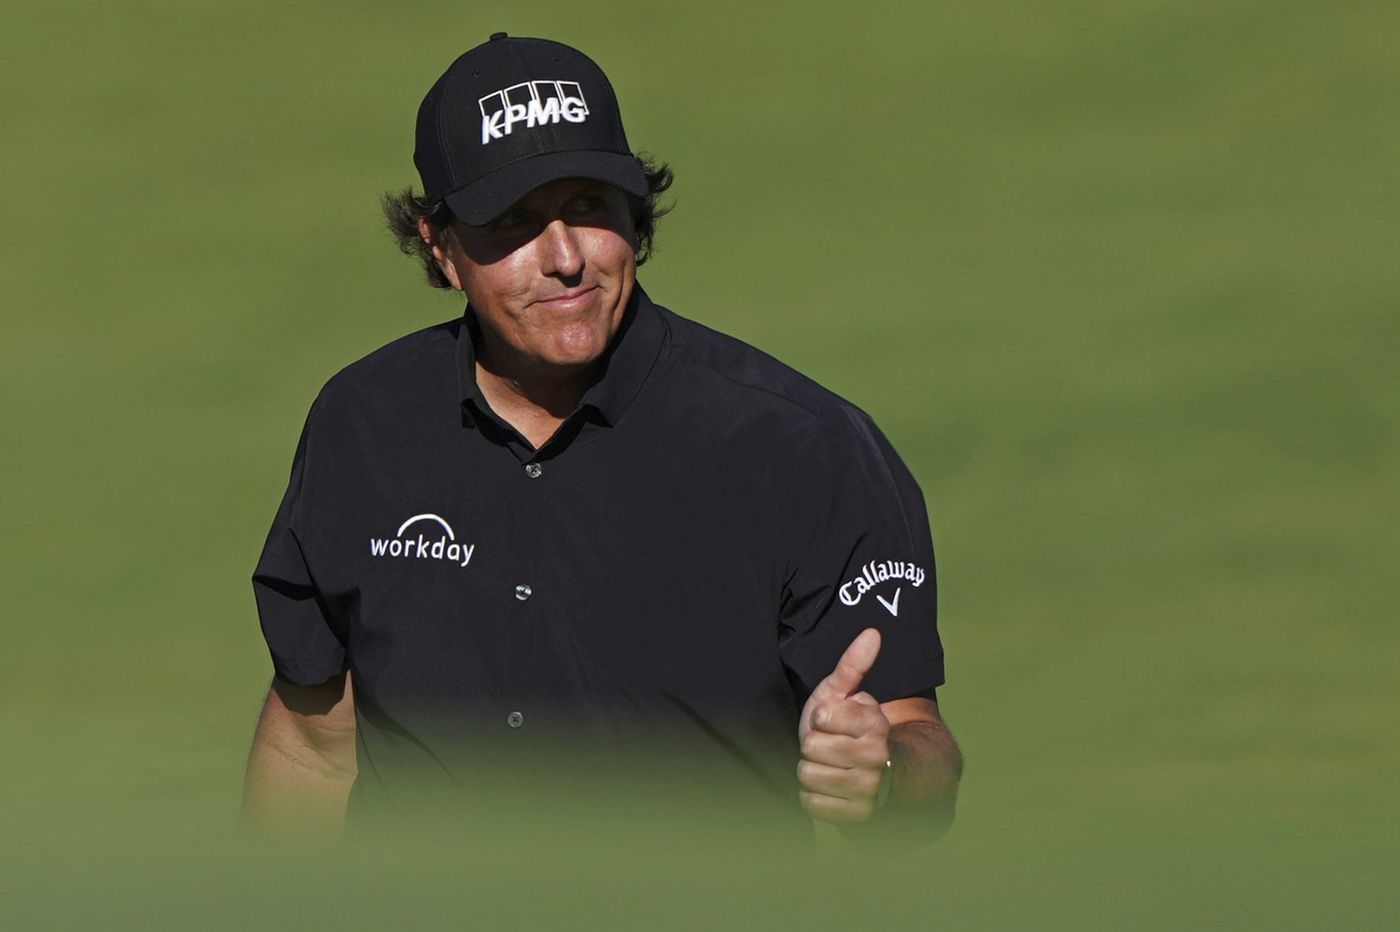 Phil Mickelson rebounds with a better round at U.S. Open, makes the cut